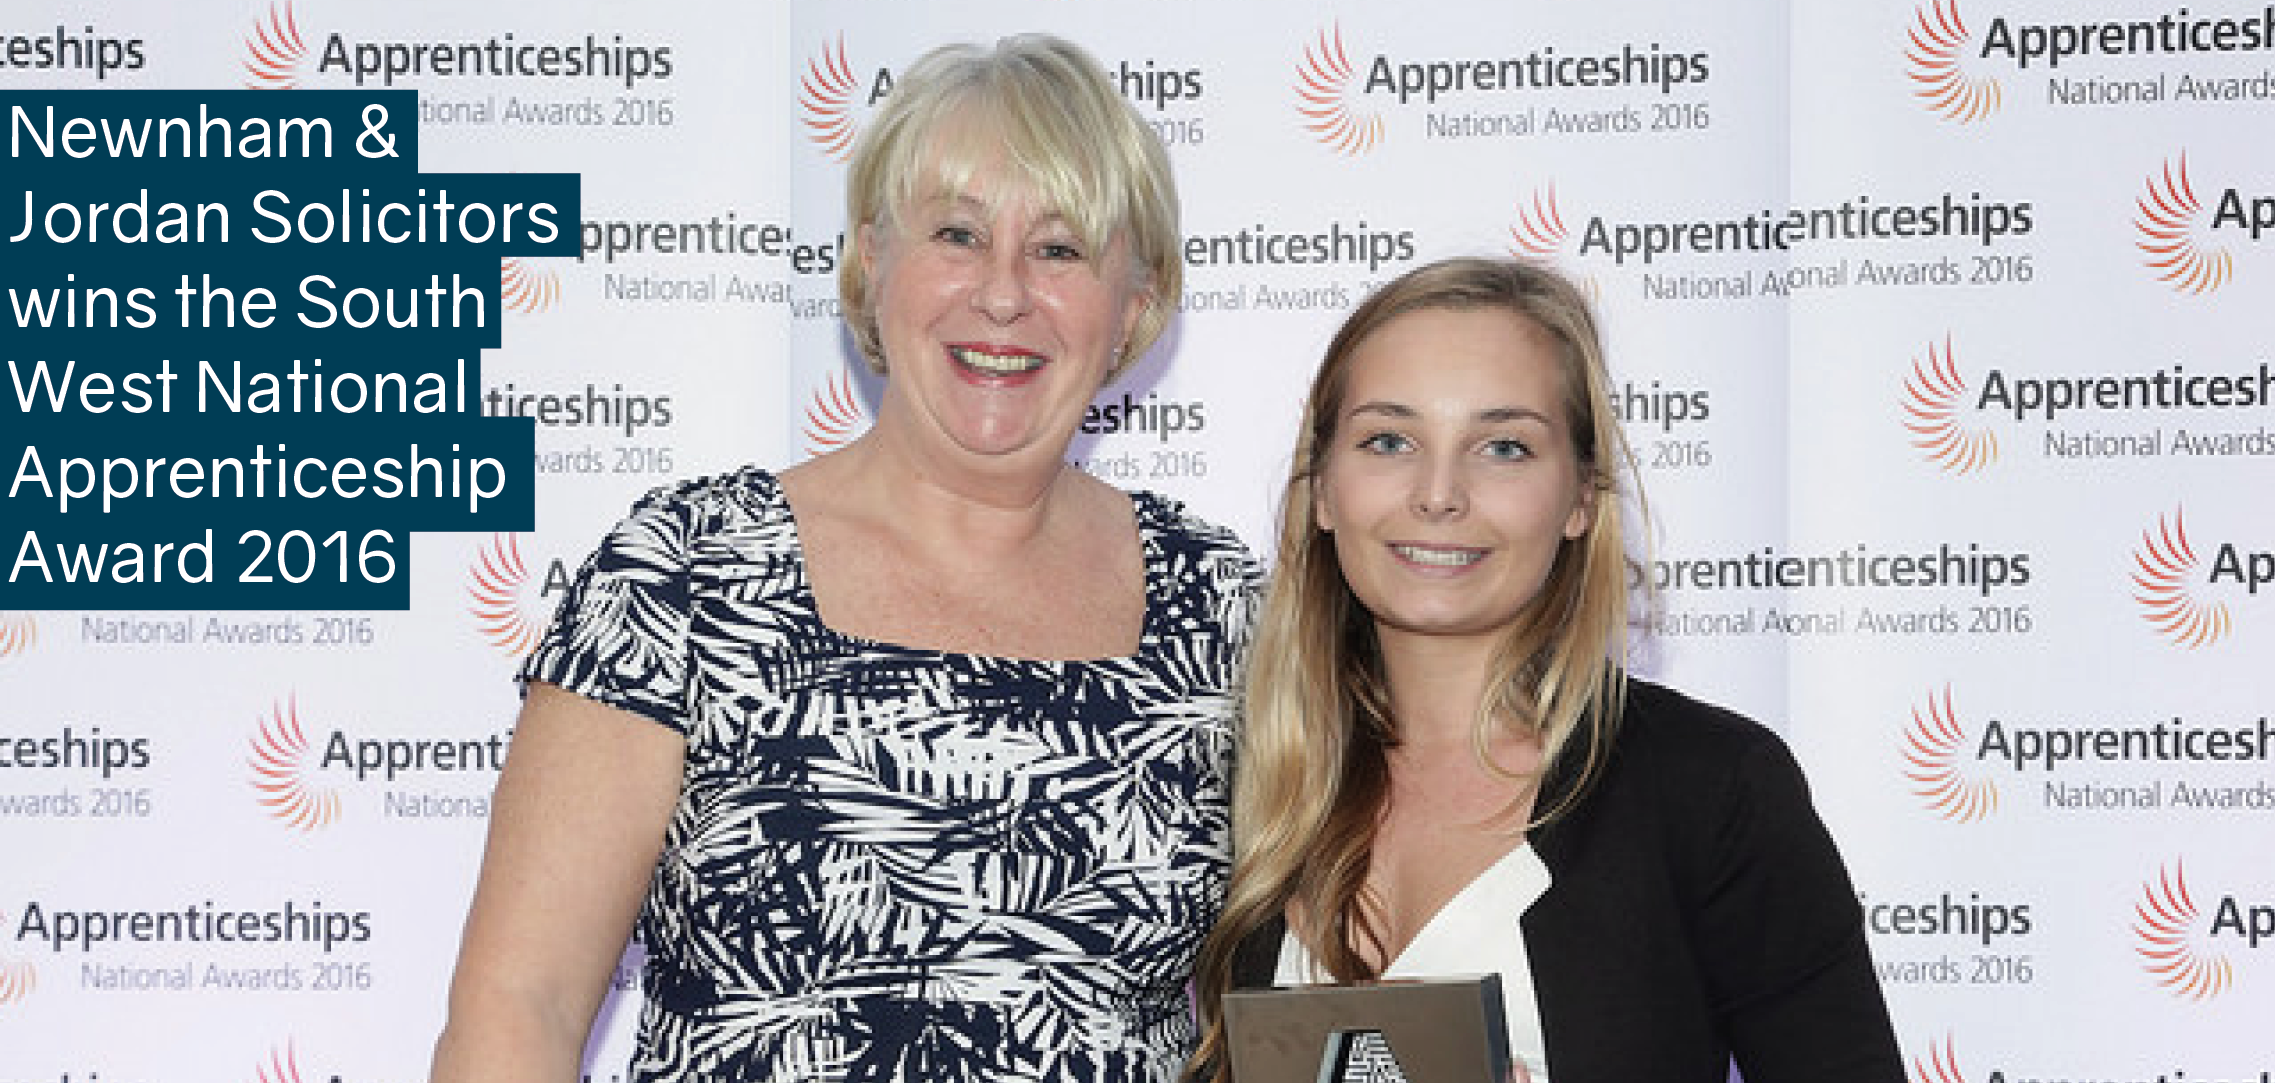 Newnham & Jordan Solicitors wins the South West National Apprenticeship Award 2016